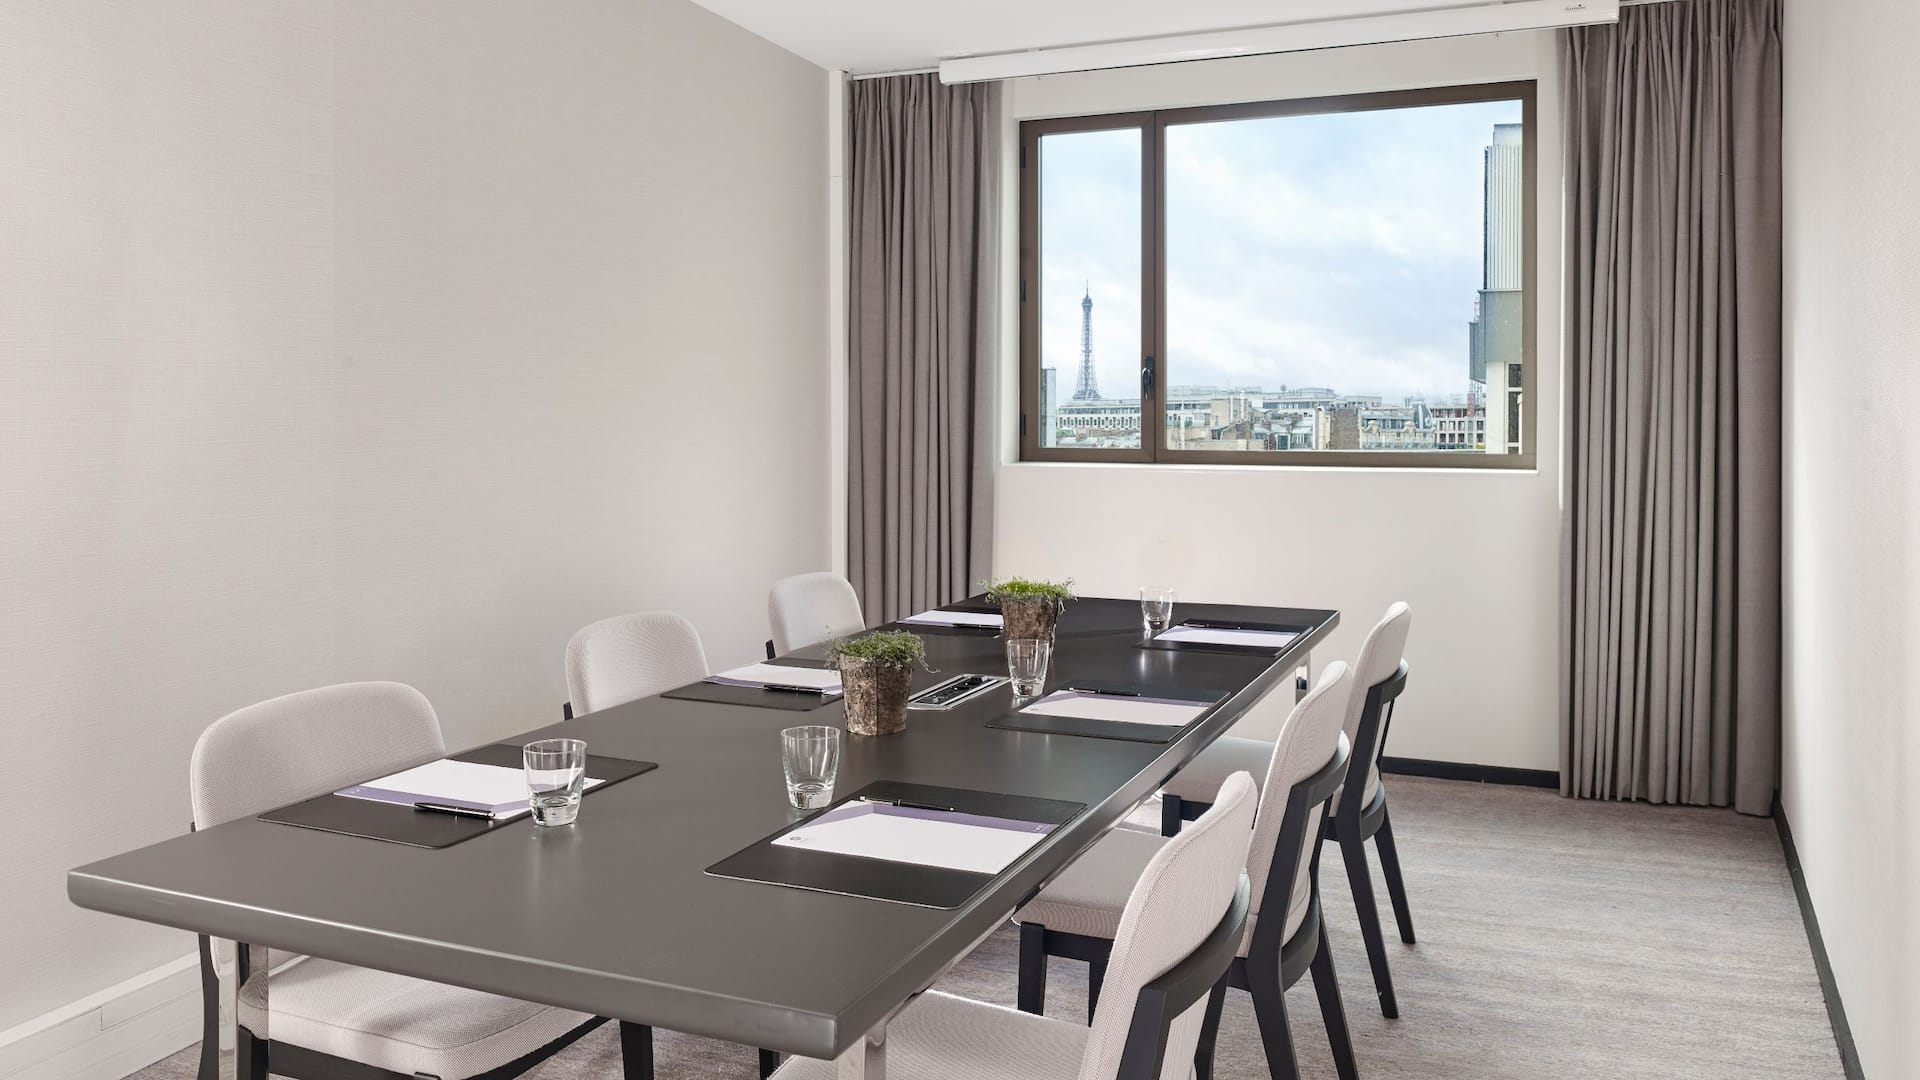 Meeting Room with View at Hotel Hyatt Regency Paris Étoile